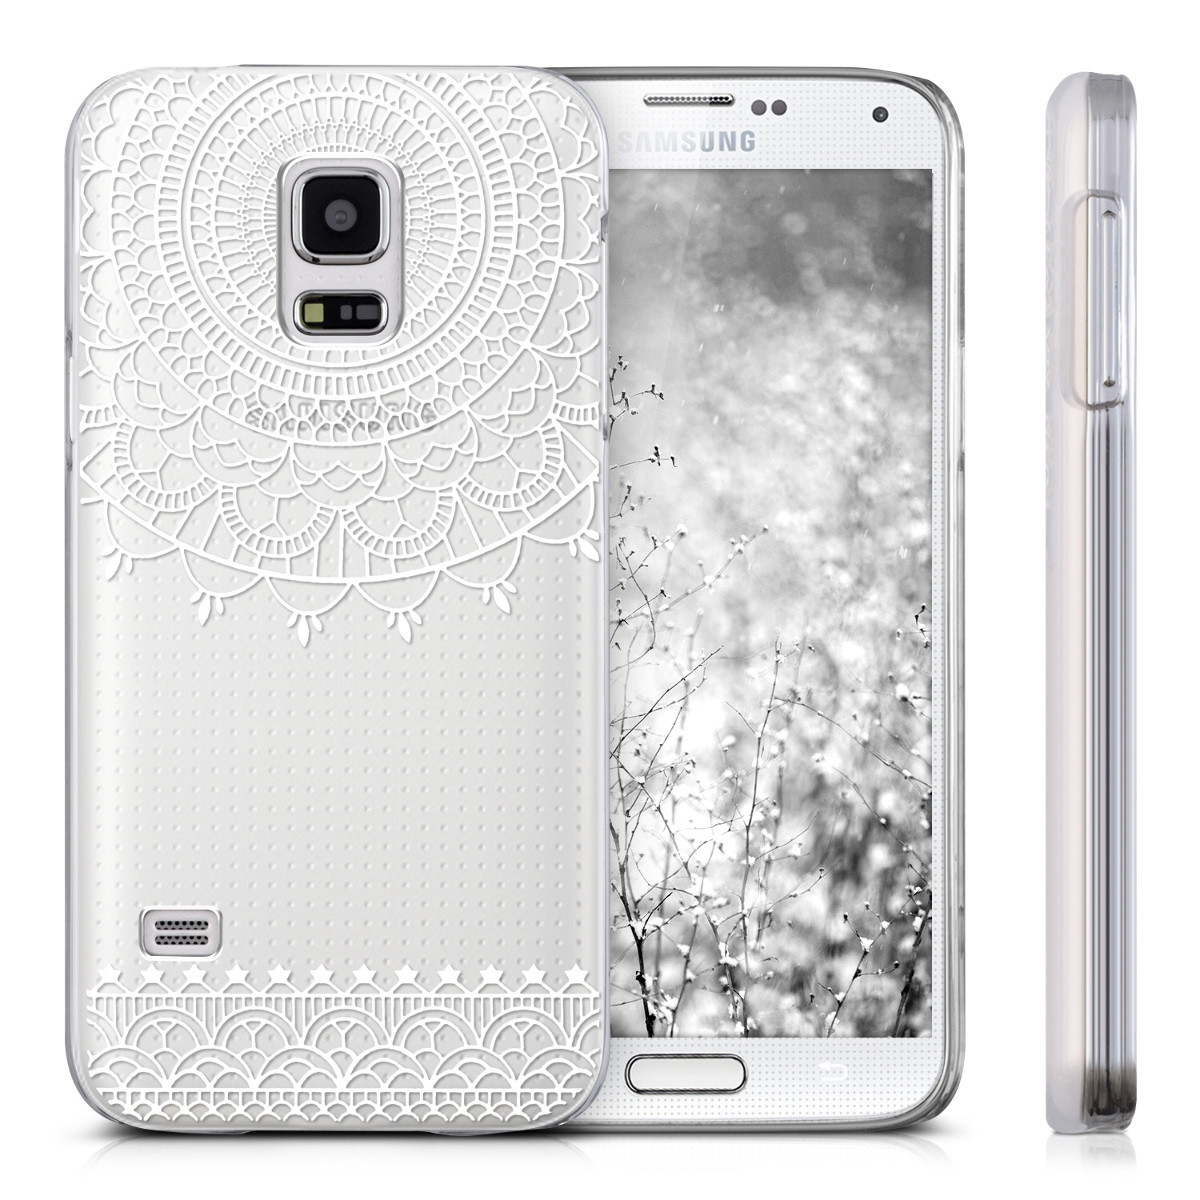 kwmobile-CUSTODIA-RIGIDA-TRASPARENTE-PER-SAMSUNG-GALAXY-S5-MINI-COVER-CASE